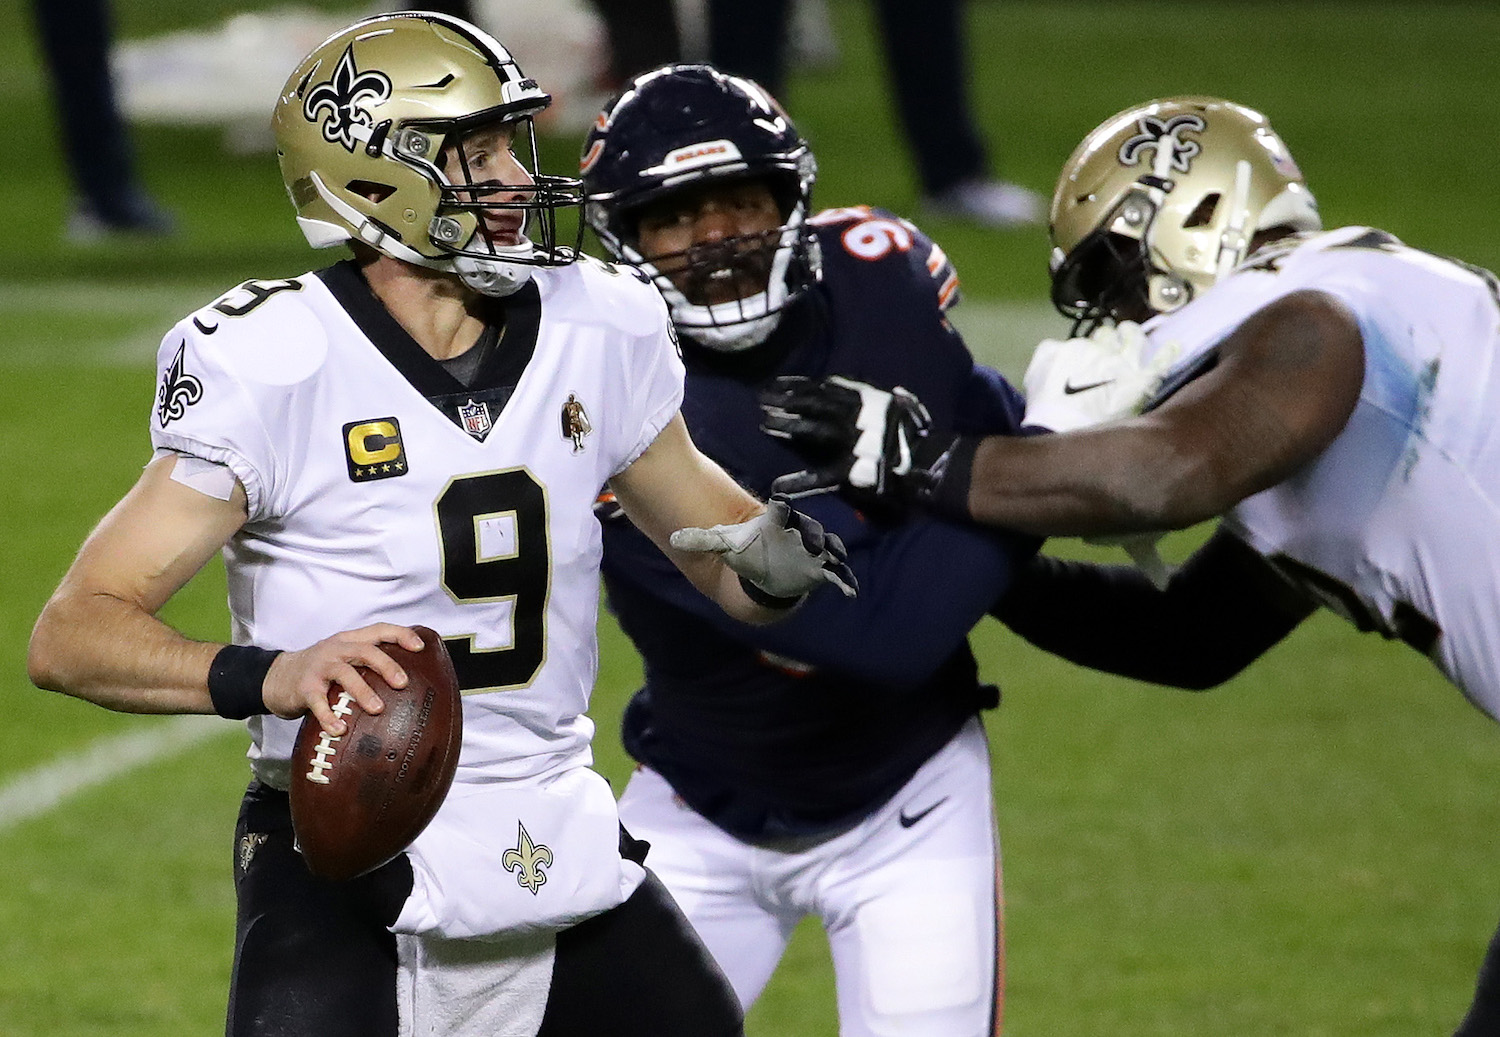 Drew Brees Shoulder Injury Is An Ominous Sign For New Orleans Saints And His Future